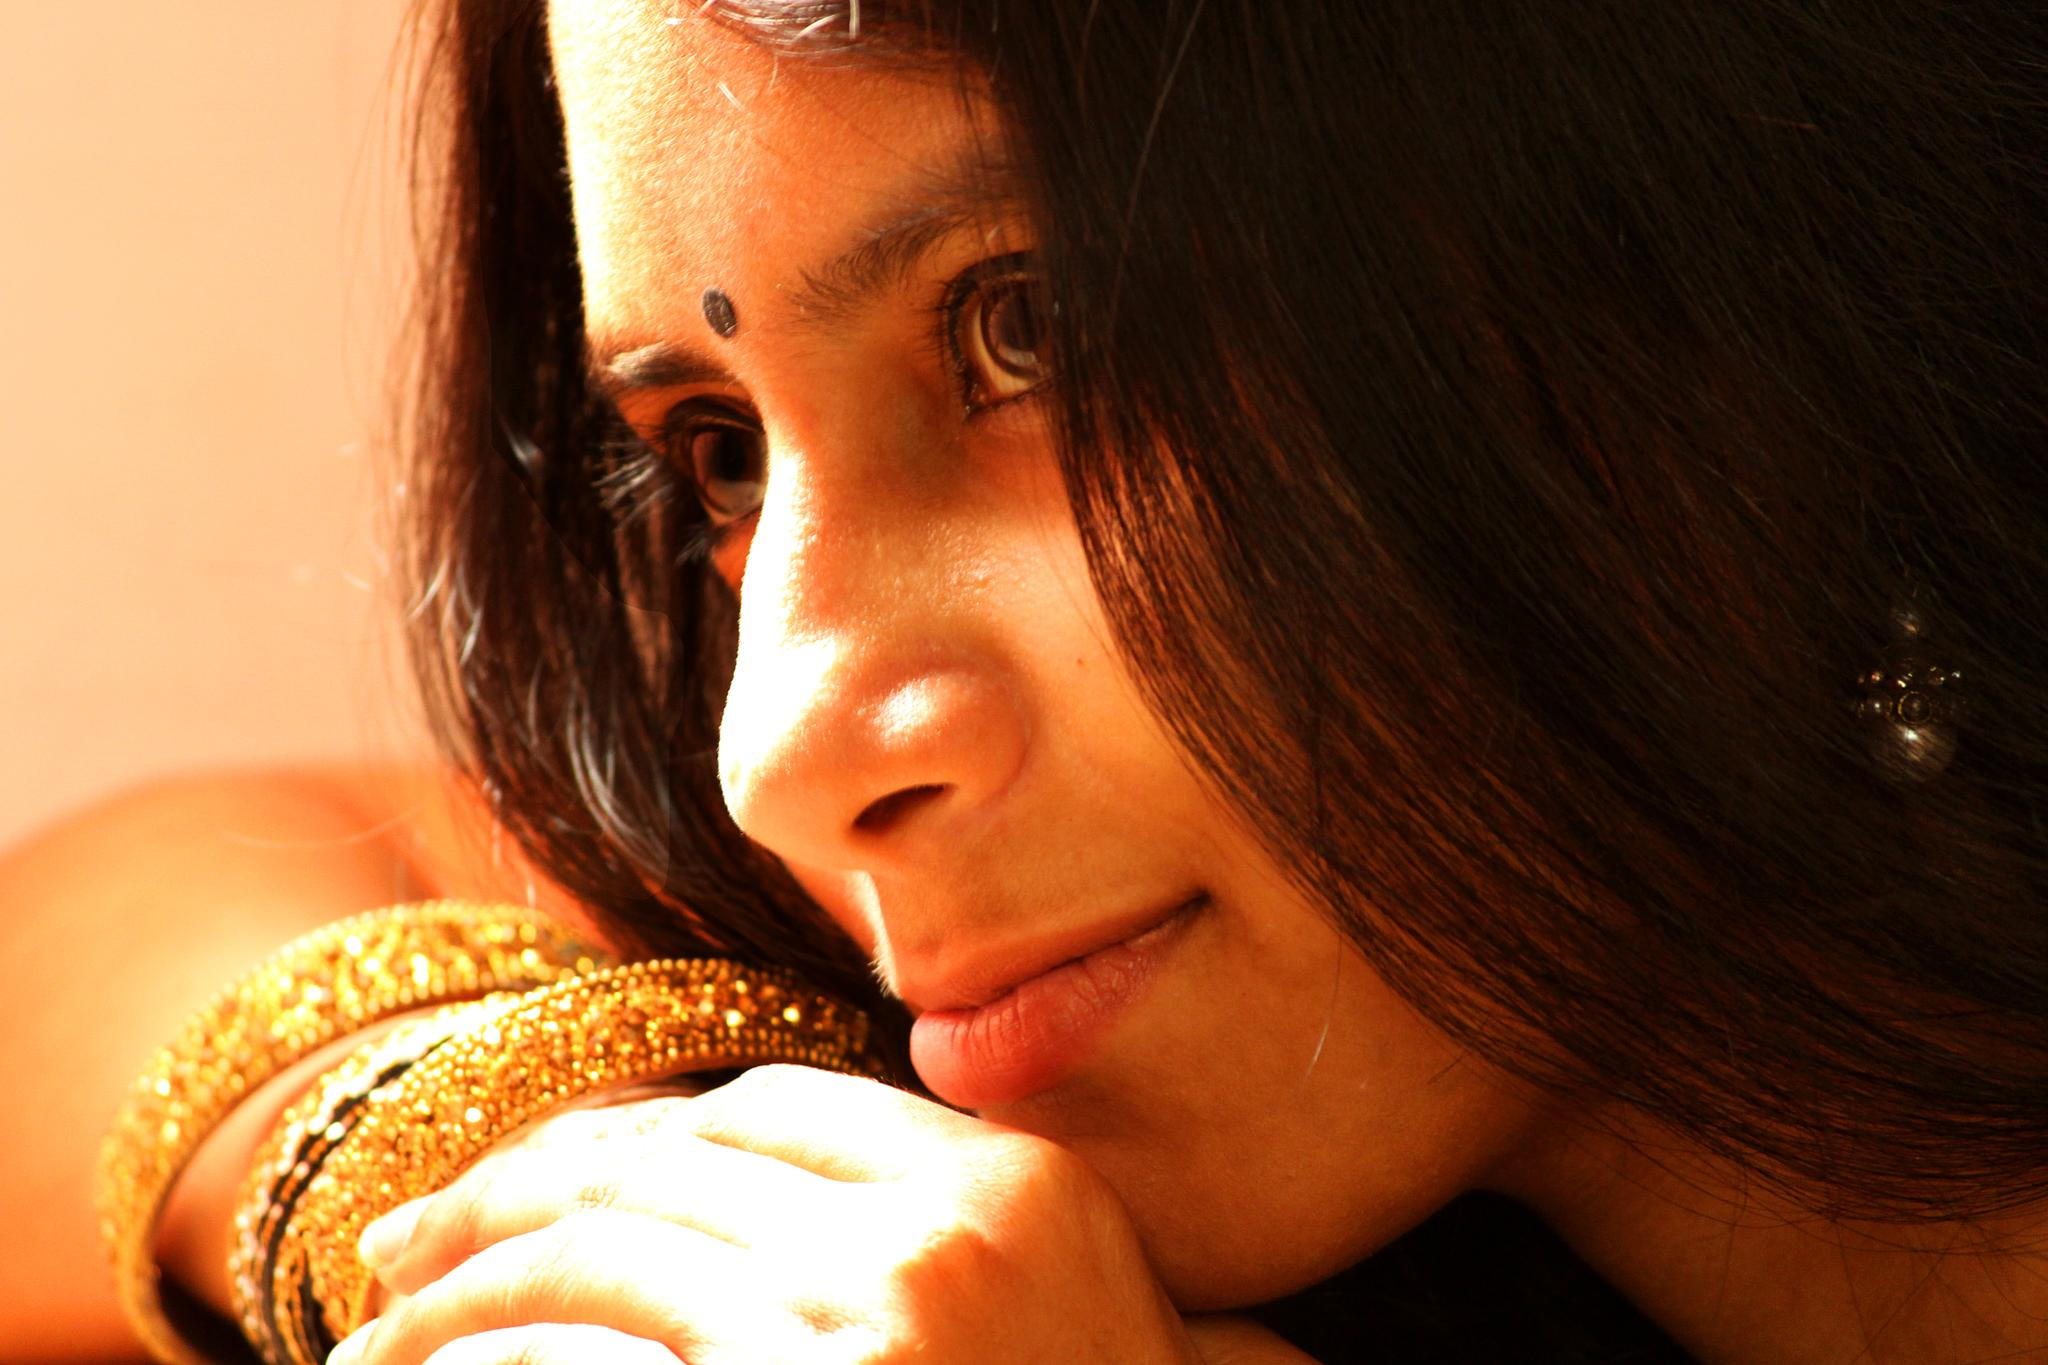 A close up portrait with natural lighting by Ramesha.Samarpana